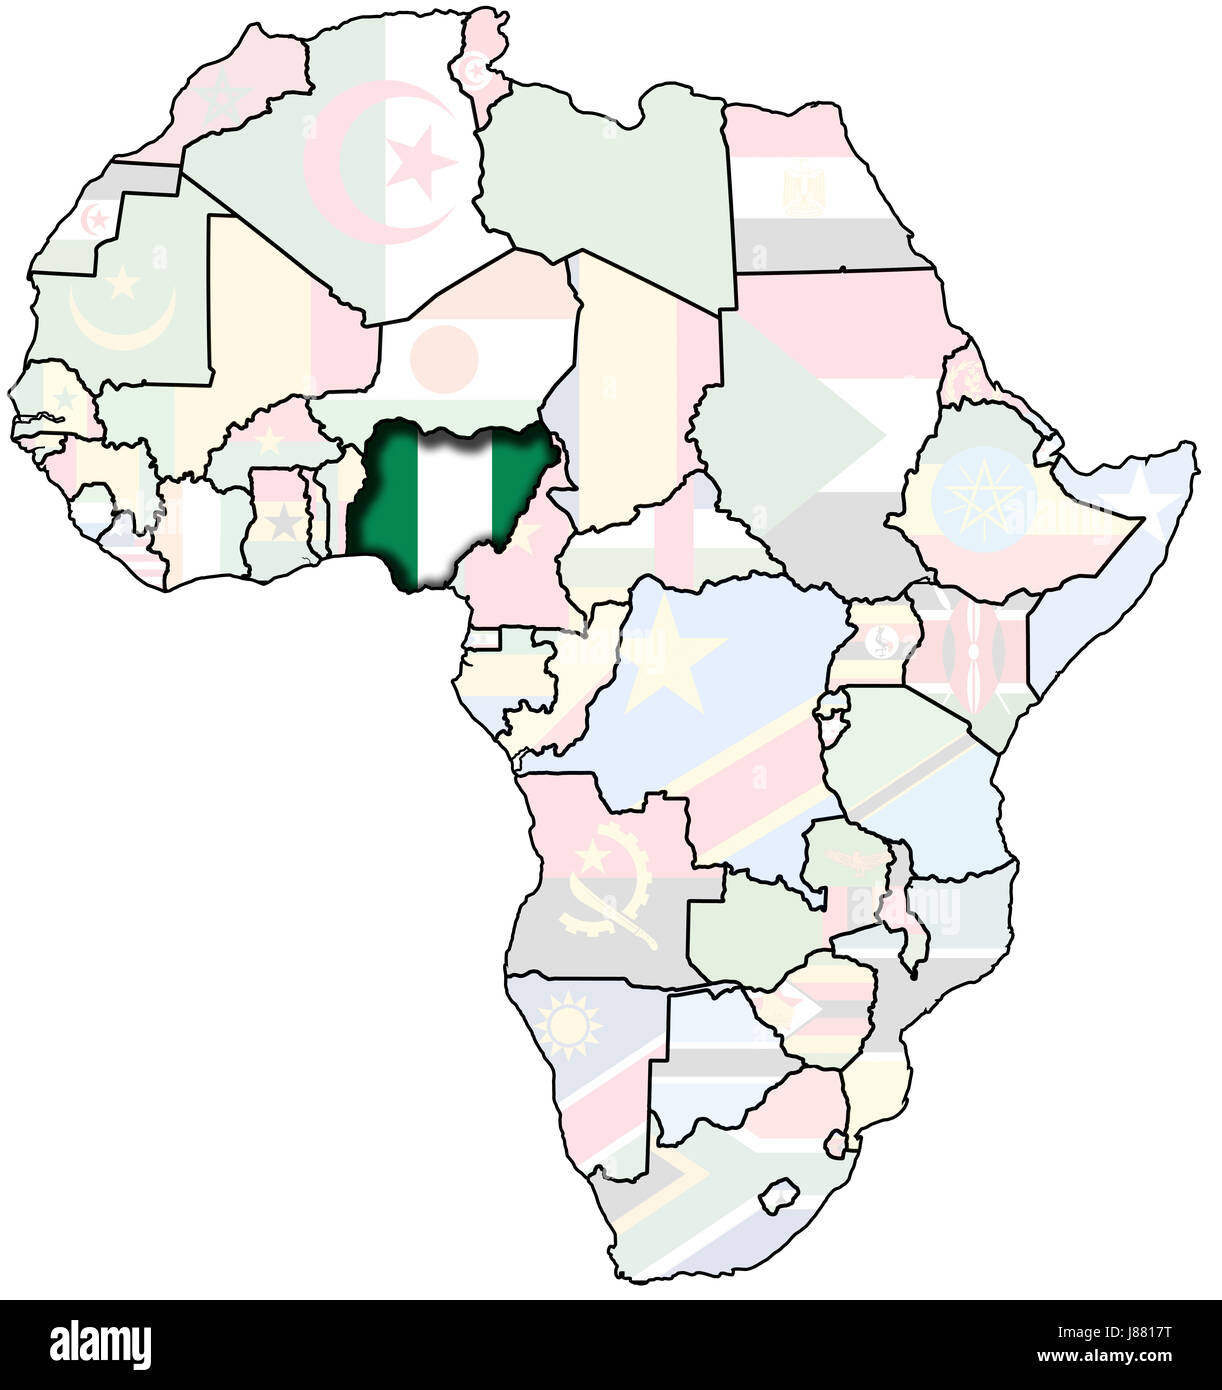 Africa Map Nigeria.Africa New Lines Flag Country Famine Nigeria Map Poor Stock